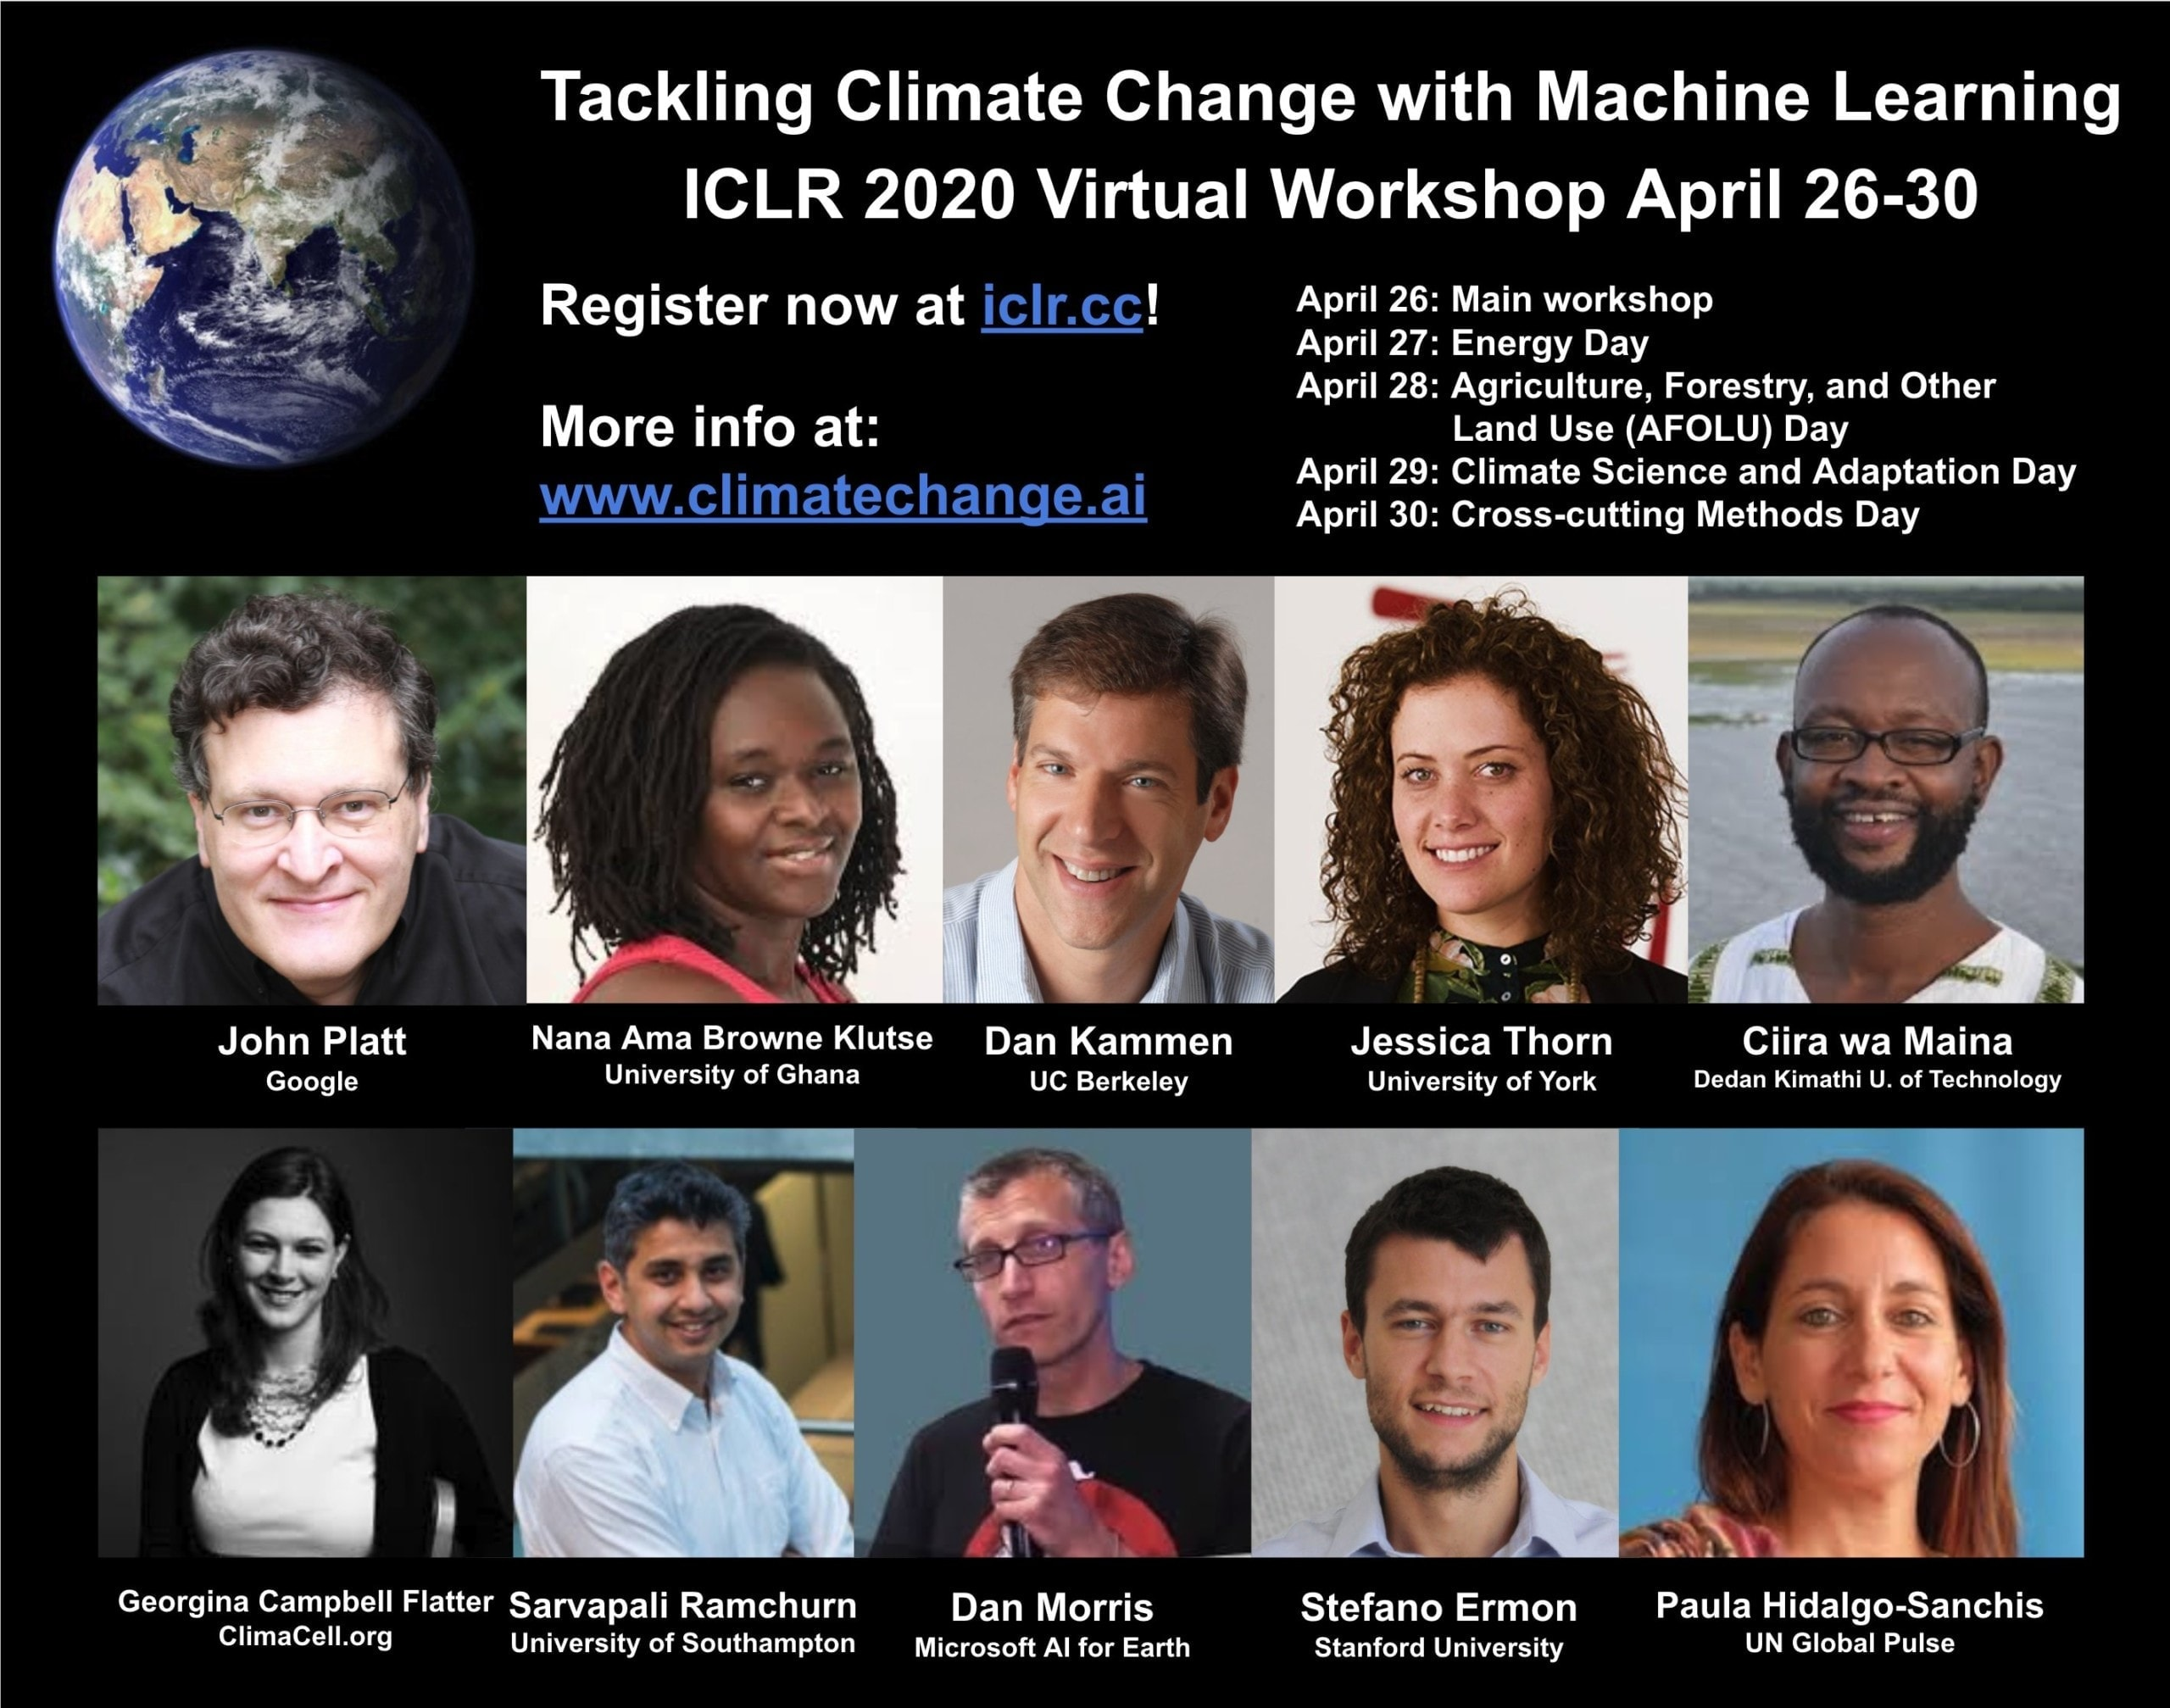 ICLR 2020 Workshop Tackling Climate Change with Machine Learning 1